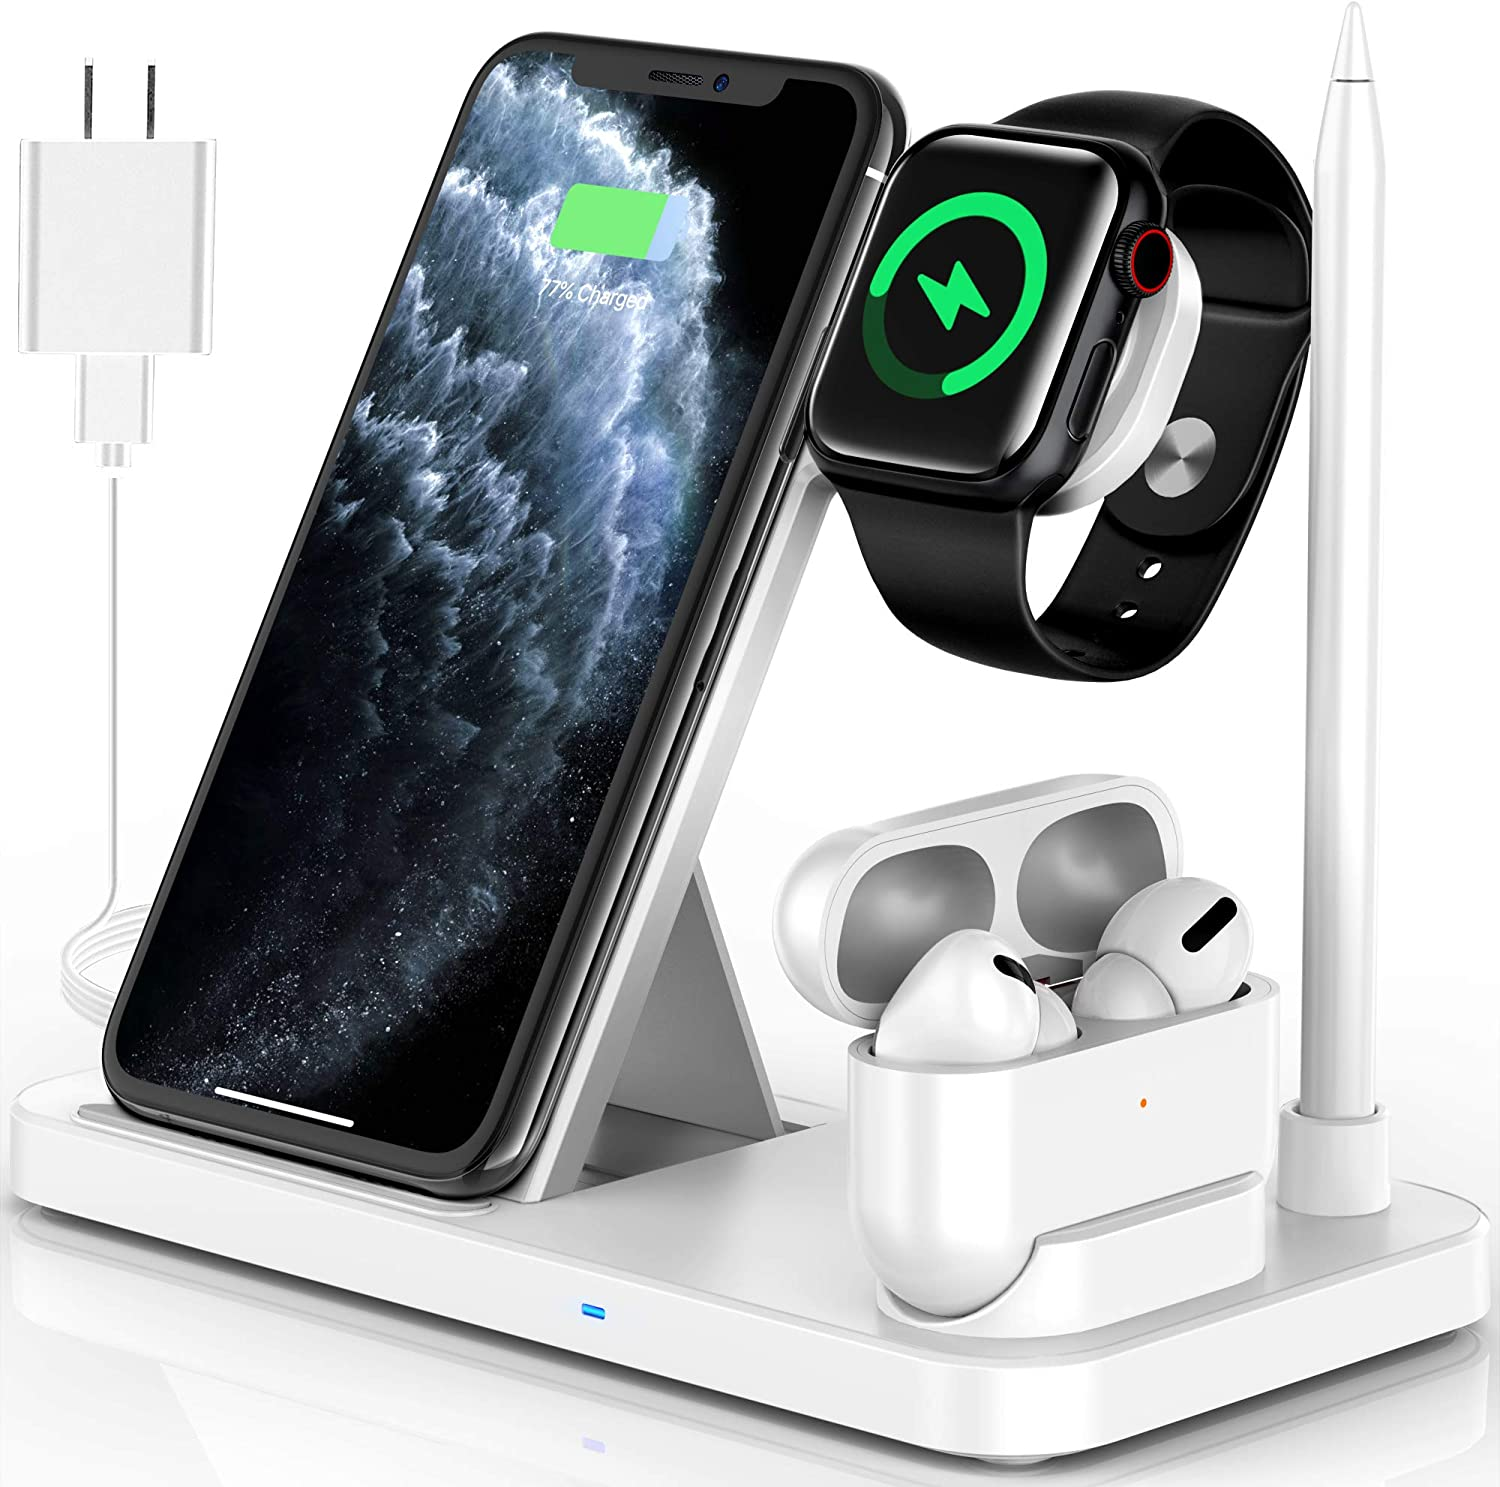 Powlaken Wireless Charger, 4 in 1 Wireless Charging Station Dock for Apple iWatch Series Se 6 5 4 3 2 1, AirPods Pro and Pencil, Charging Stand for iPhone 11, 11 Pro max, Xr, Xs max, X (White)